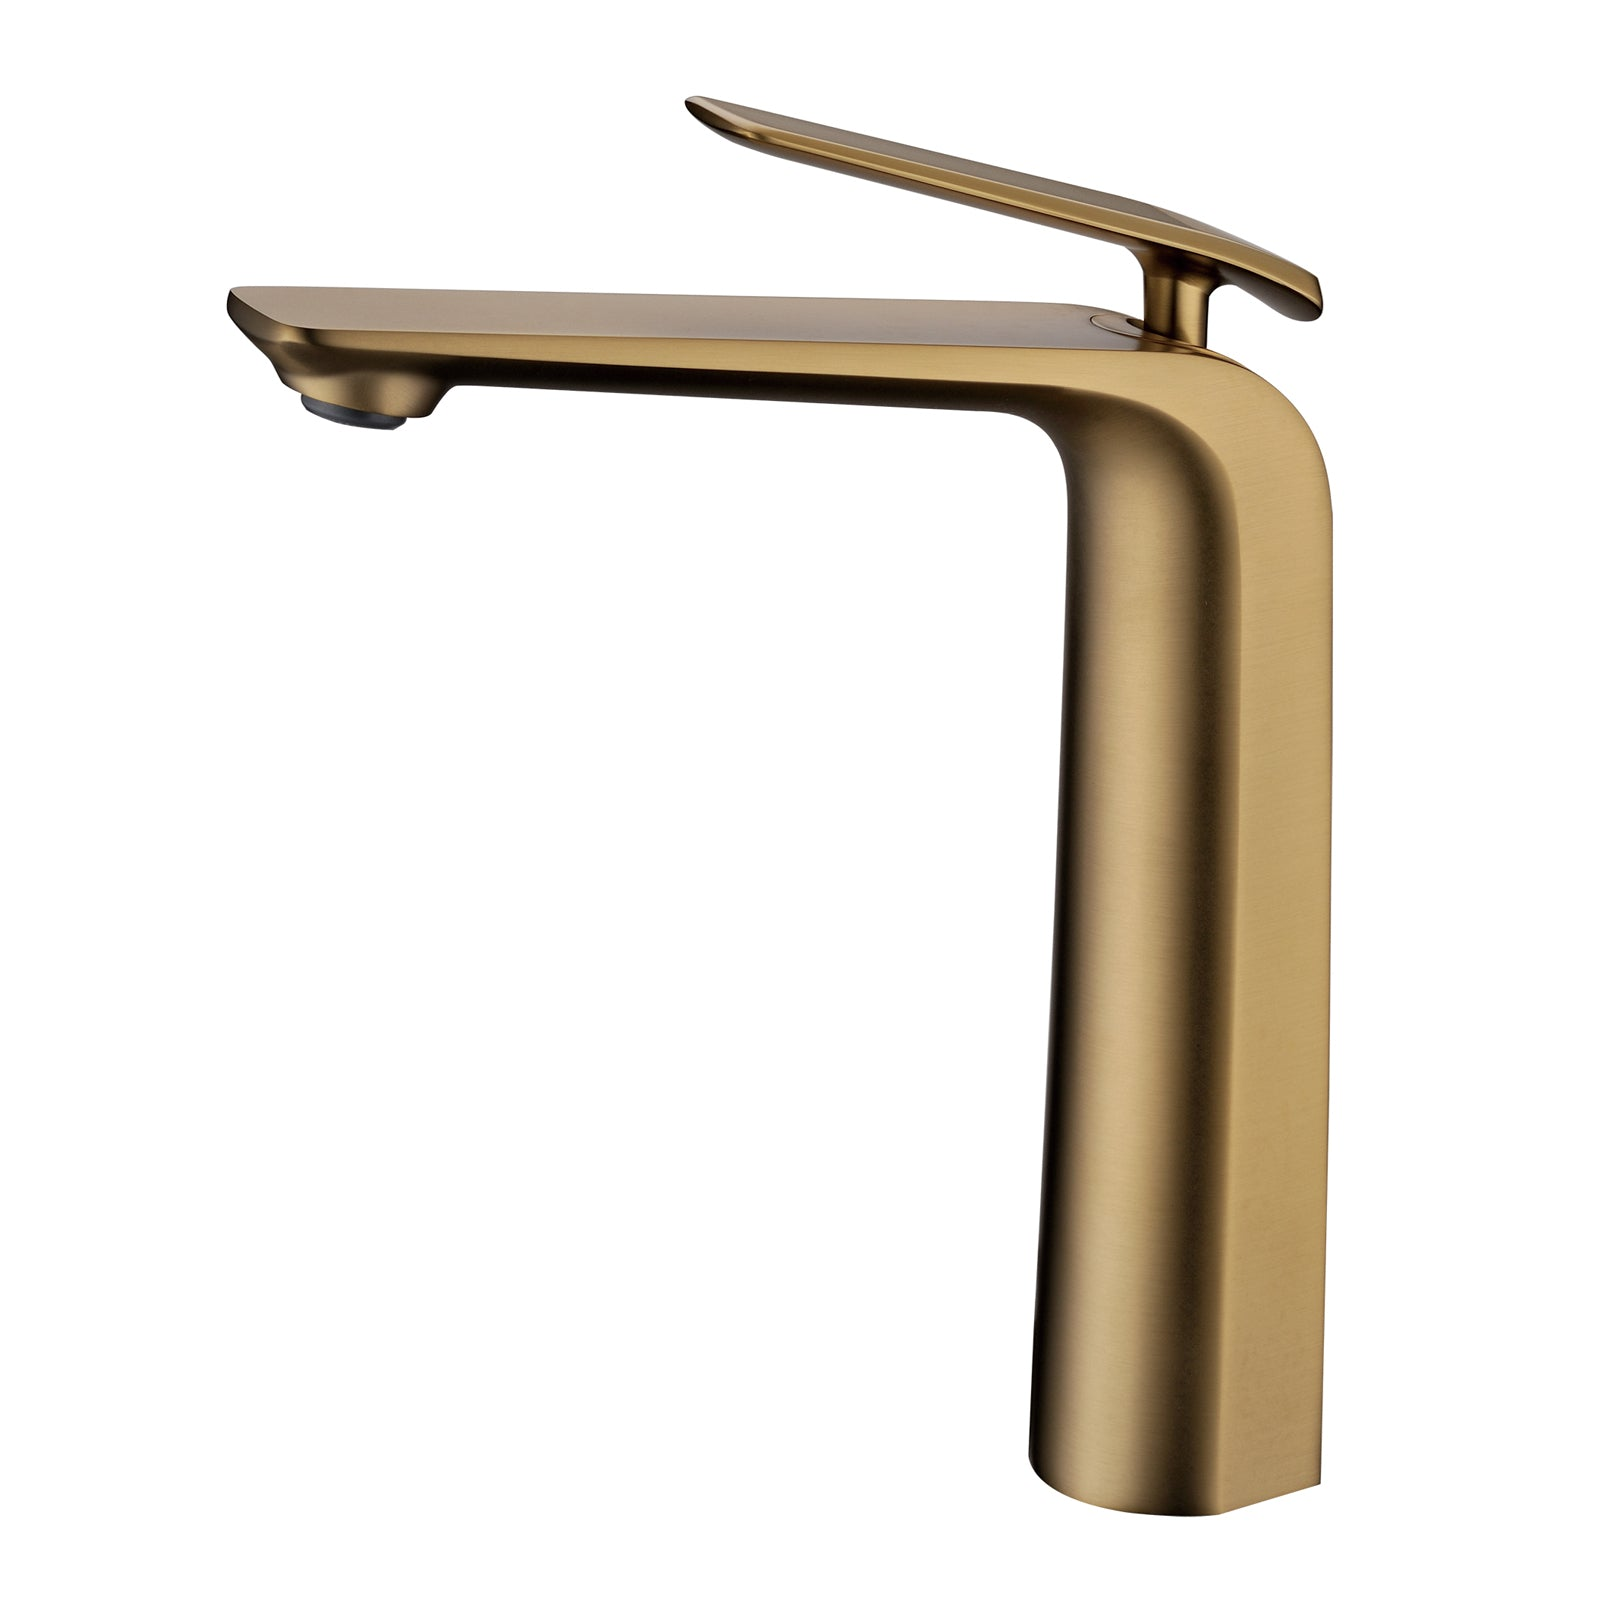 Esperia Brushed Yellow Gold Tall Basin Mixer